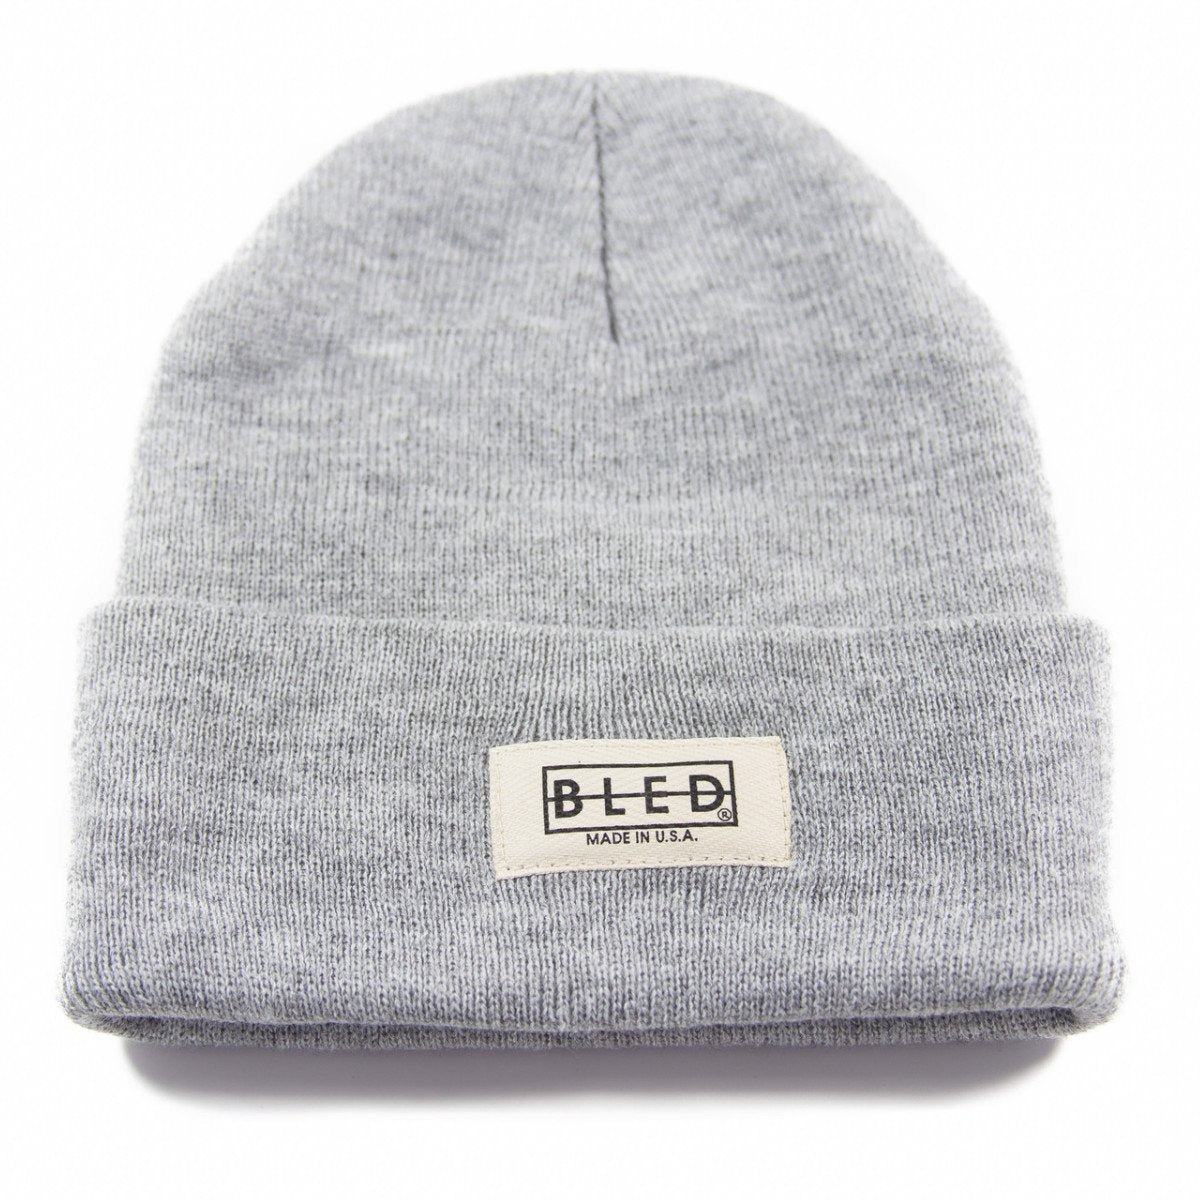 100% acrylic beanie in heather grey featuring twill Bled label on the front, skateboards, skate, hype, streetwear, skateboarding